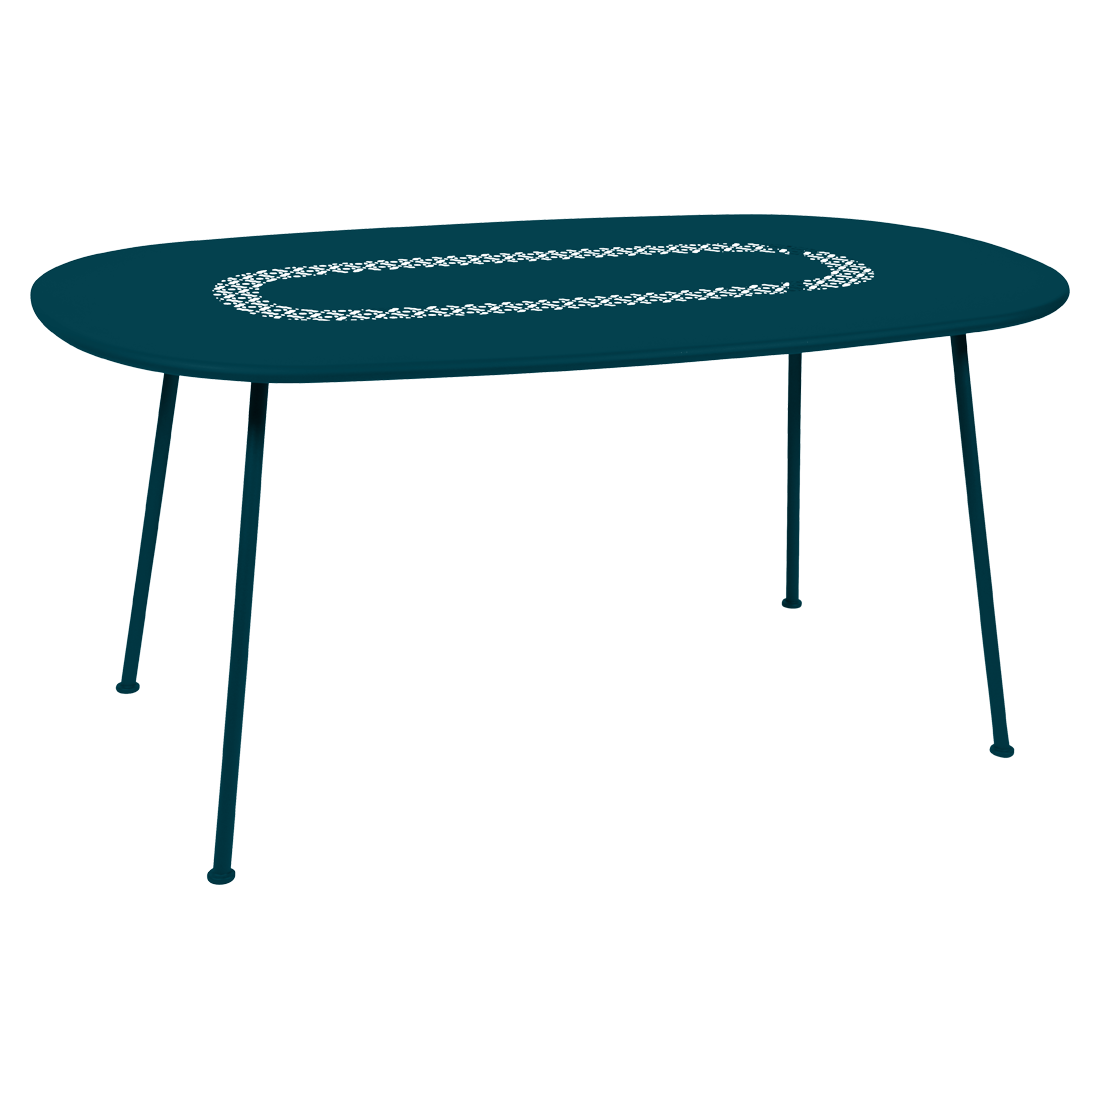 LORETTE / 5762 OVAL TABLE 160X90 CM